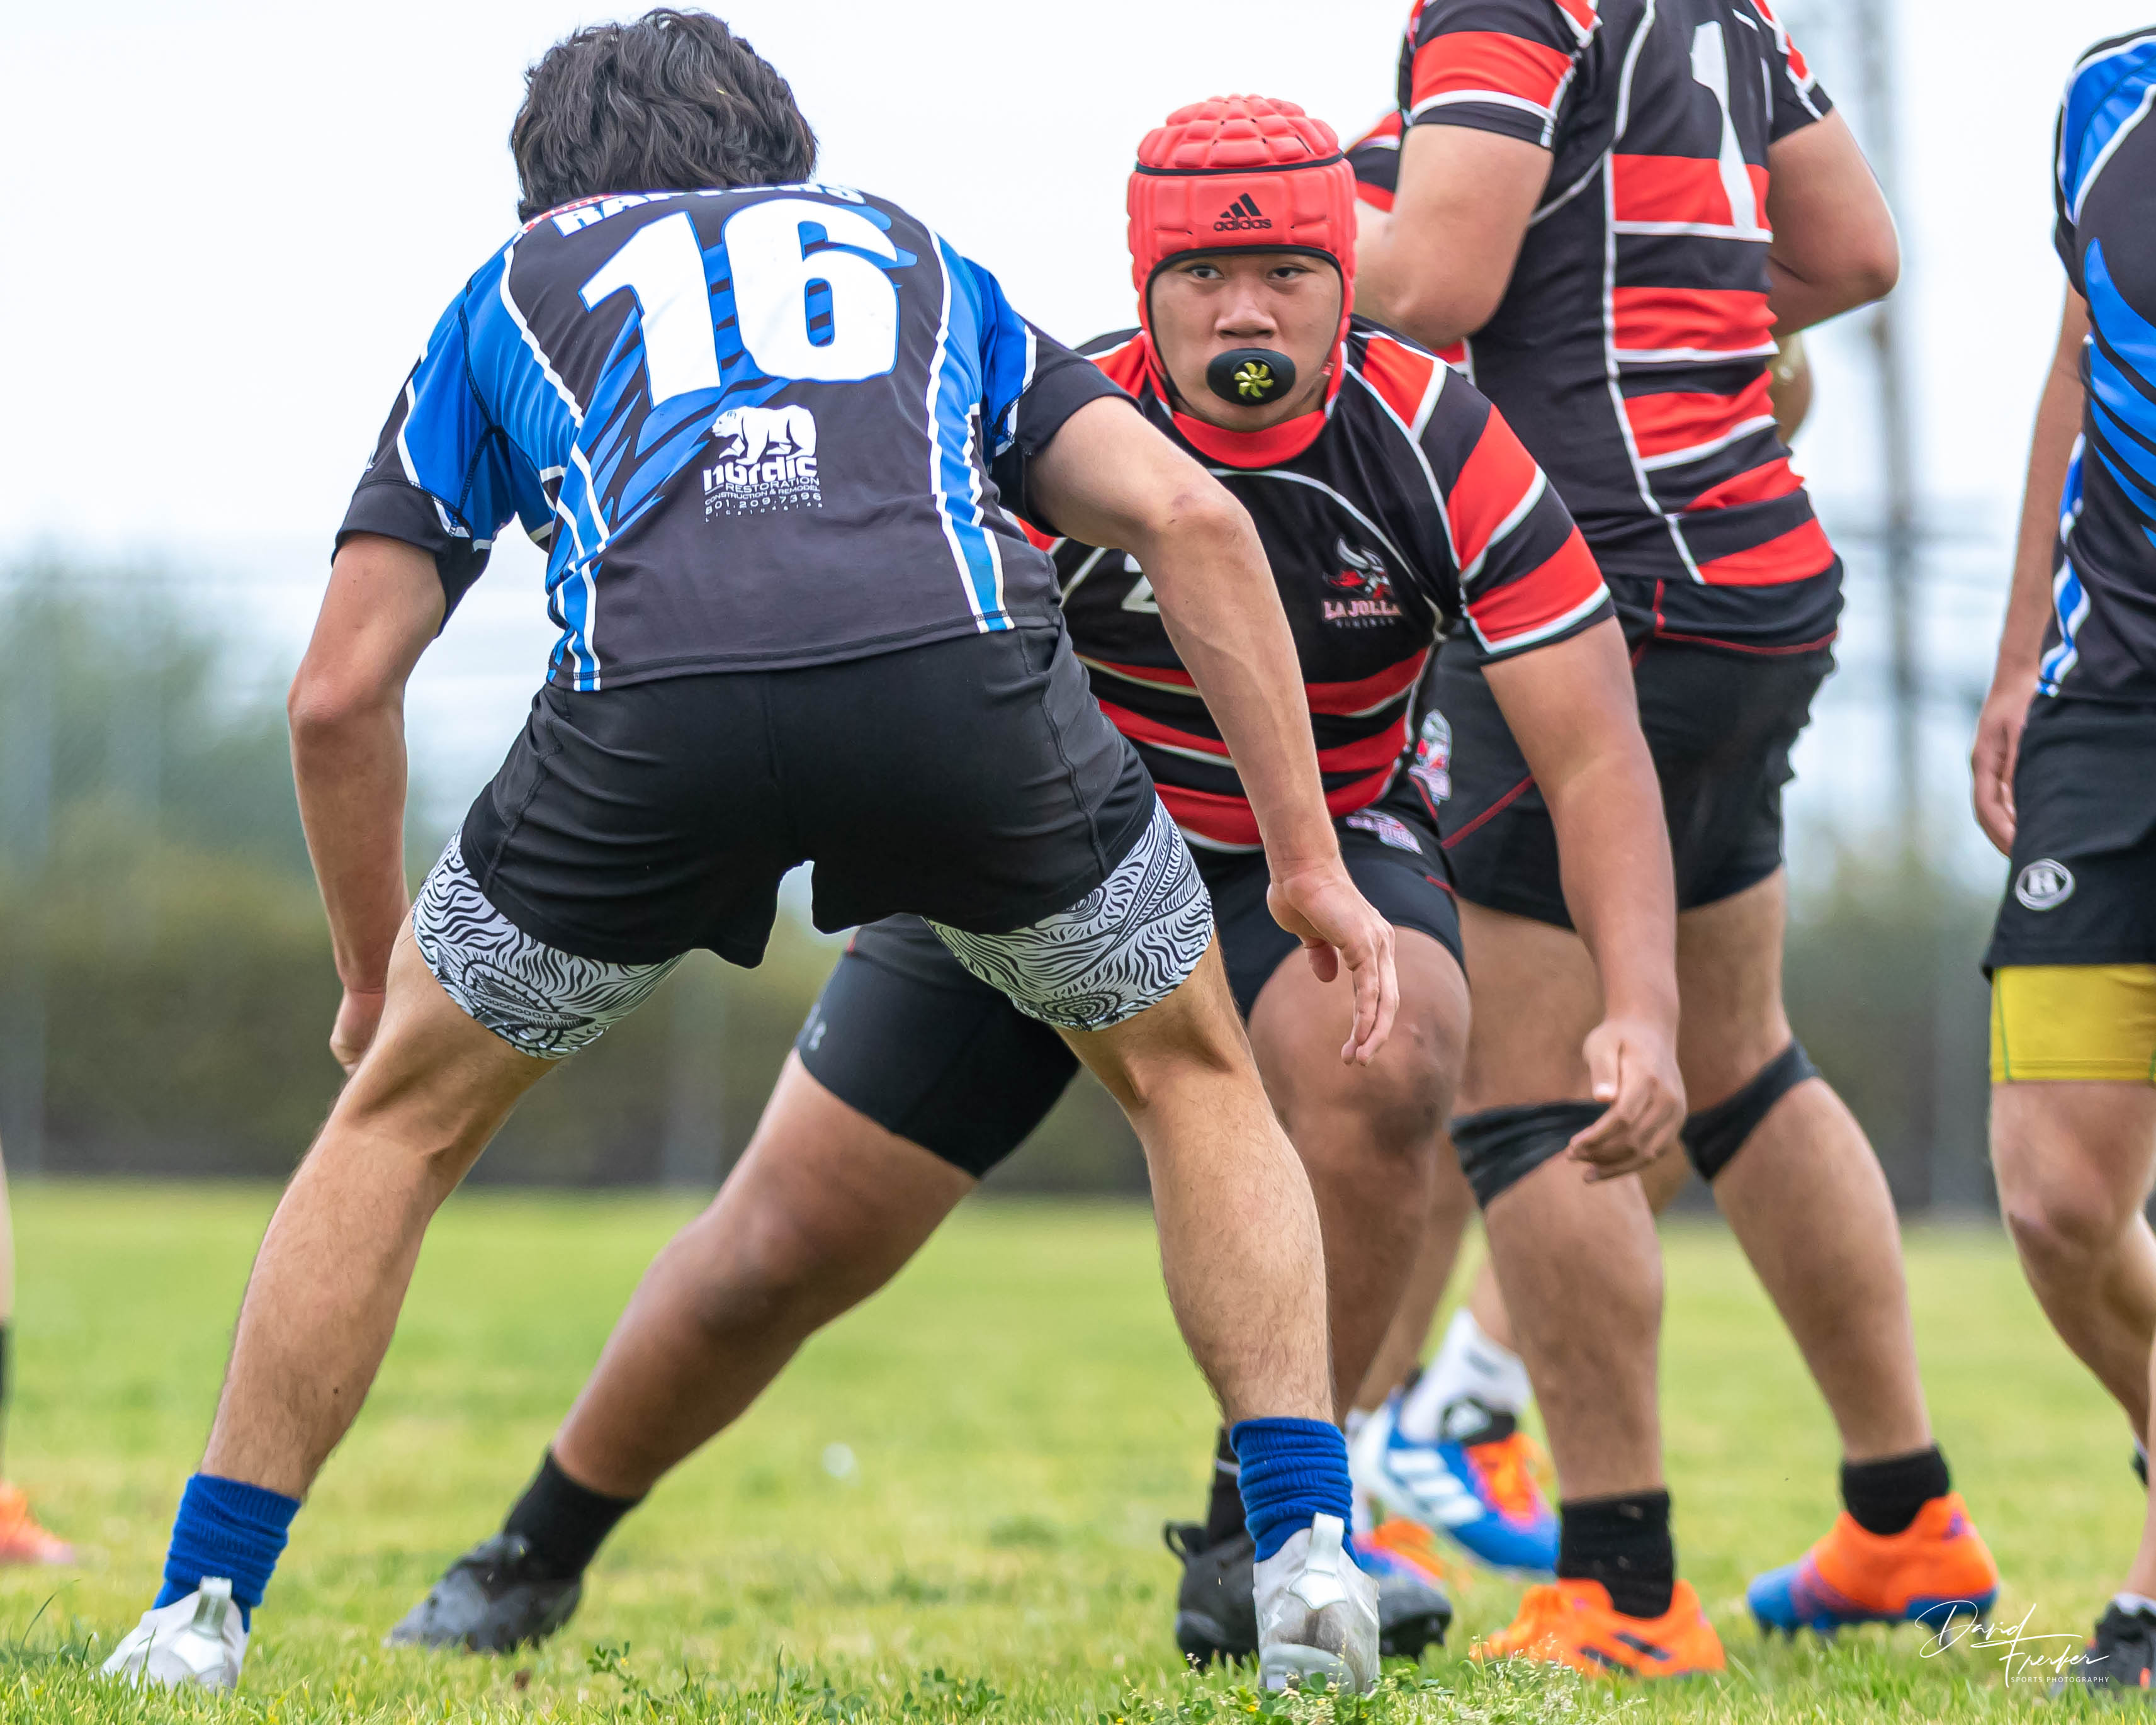 LaJollaRugby58